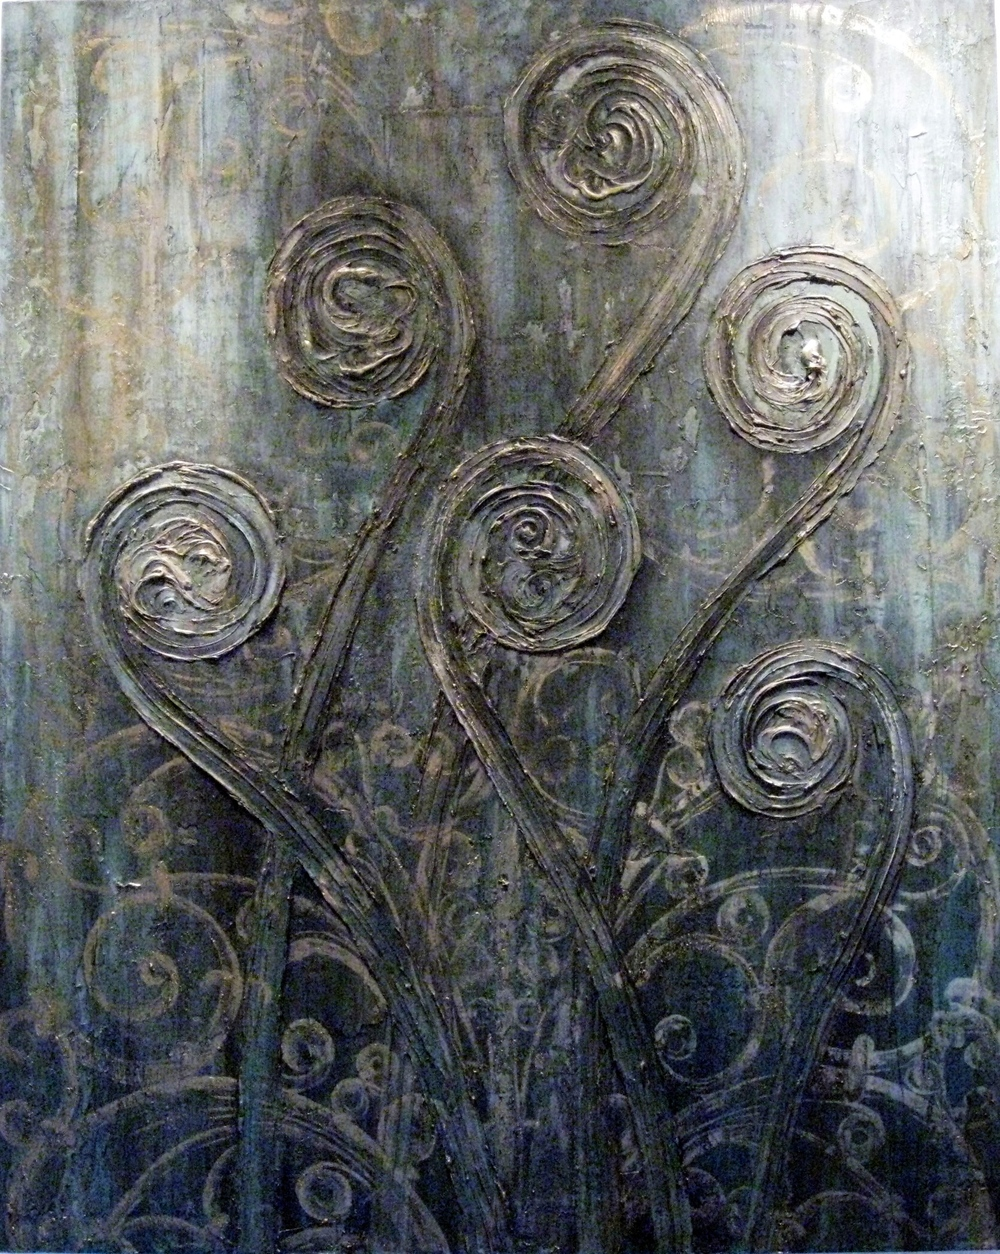 From the Source  60 x 48 inches  mixed media on canvas  $6840 USD